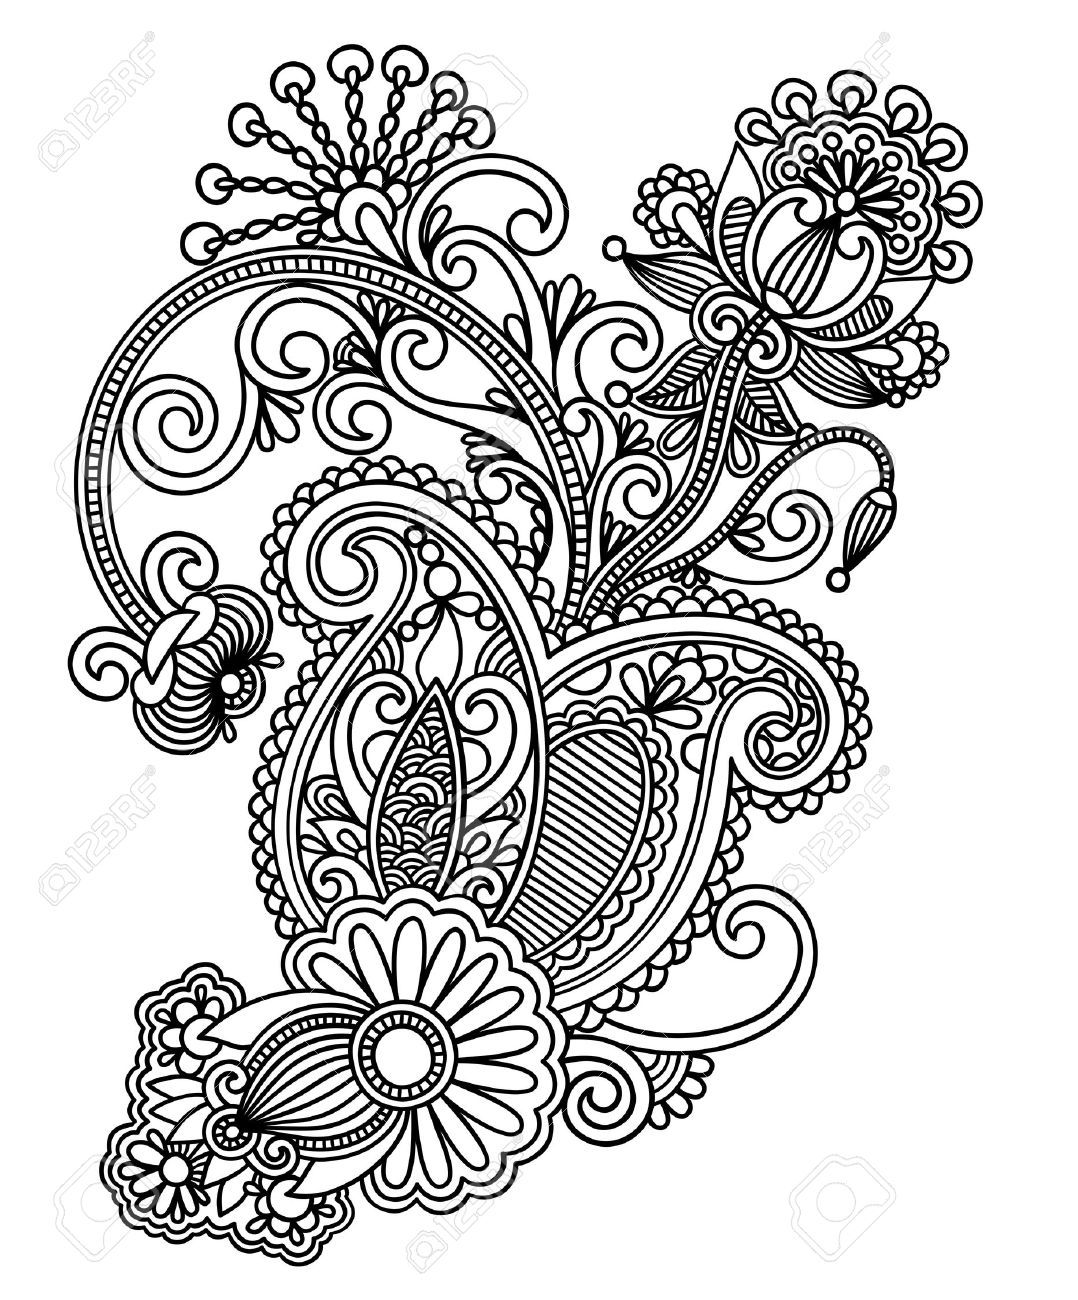 Line Drawing Designs : Aztec floral design google search tattoo ideas